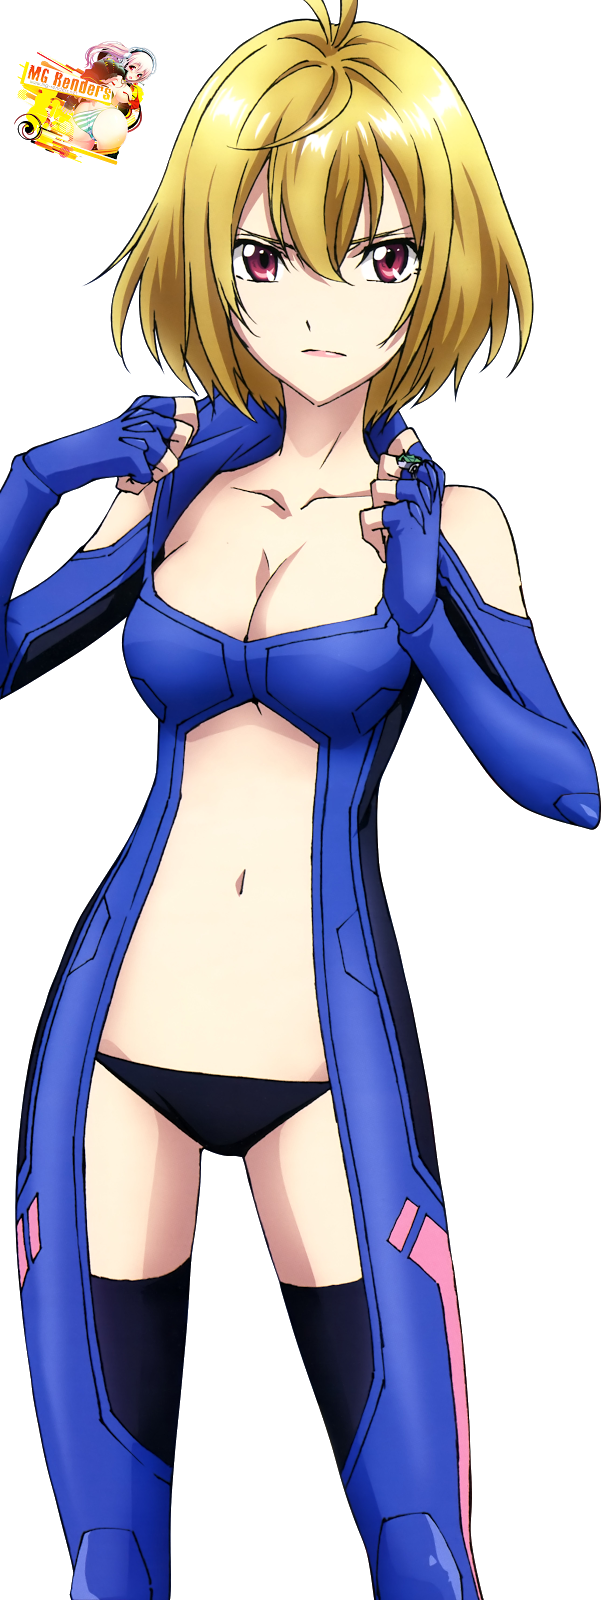 Tags: Anime, Render,  Angelise Ikaruga Misurugi,  Cross Ange,  PNG, Image, Picture